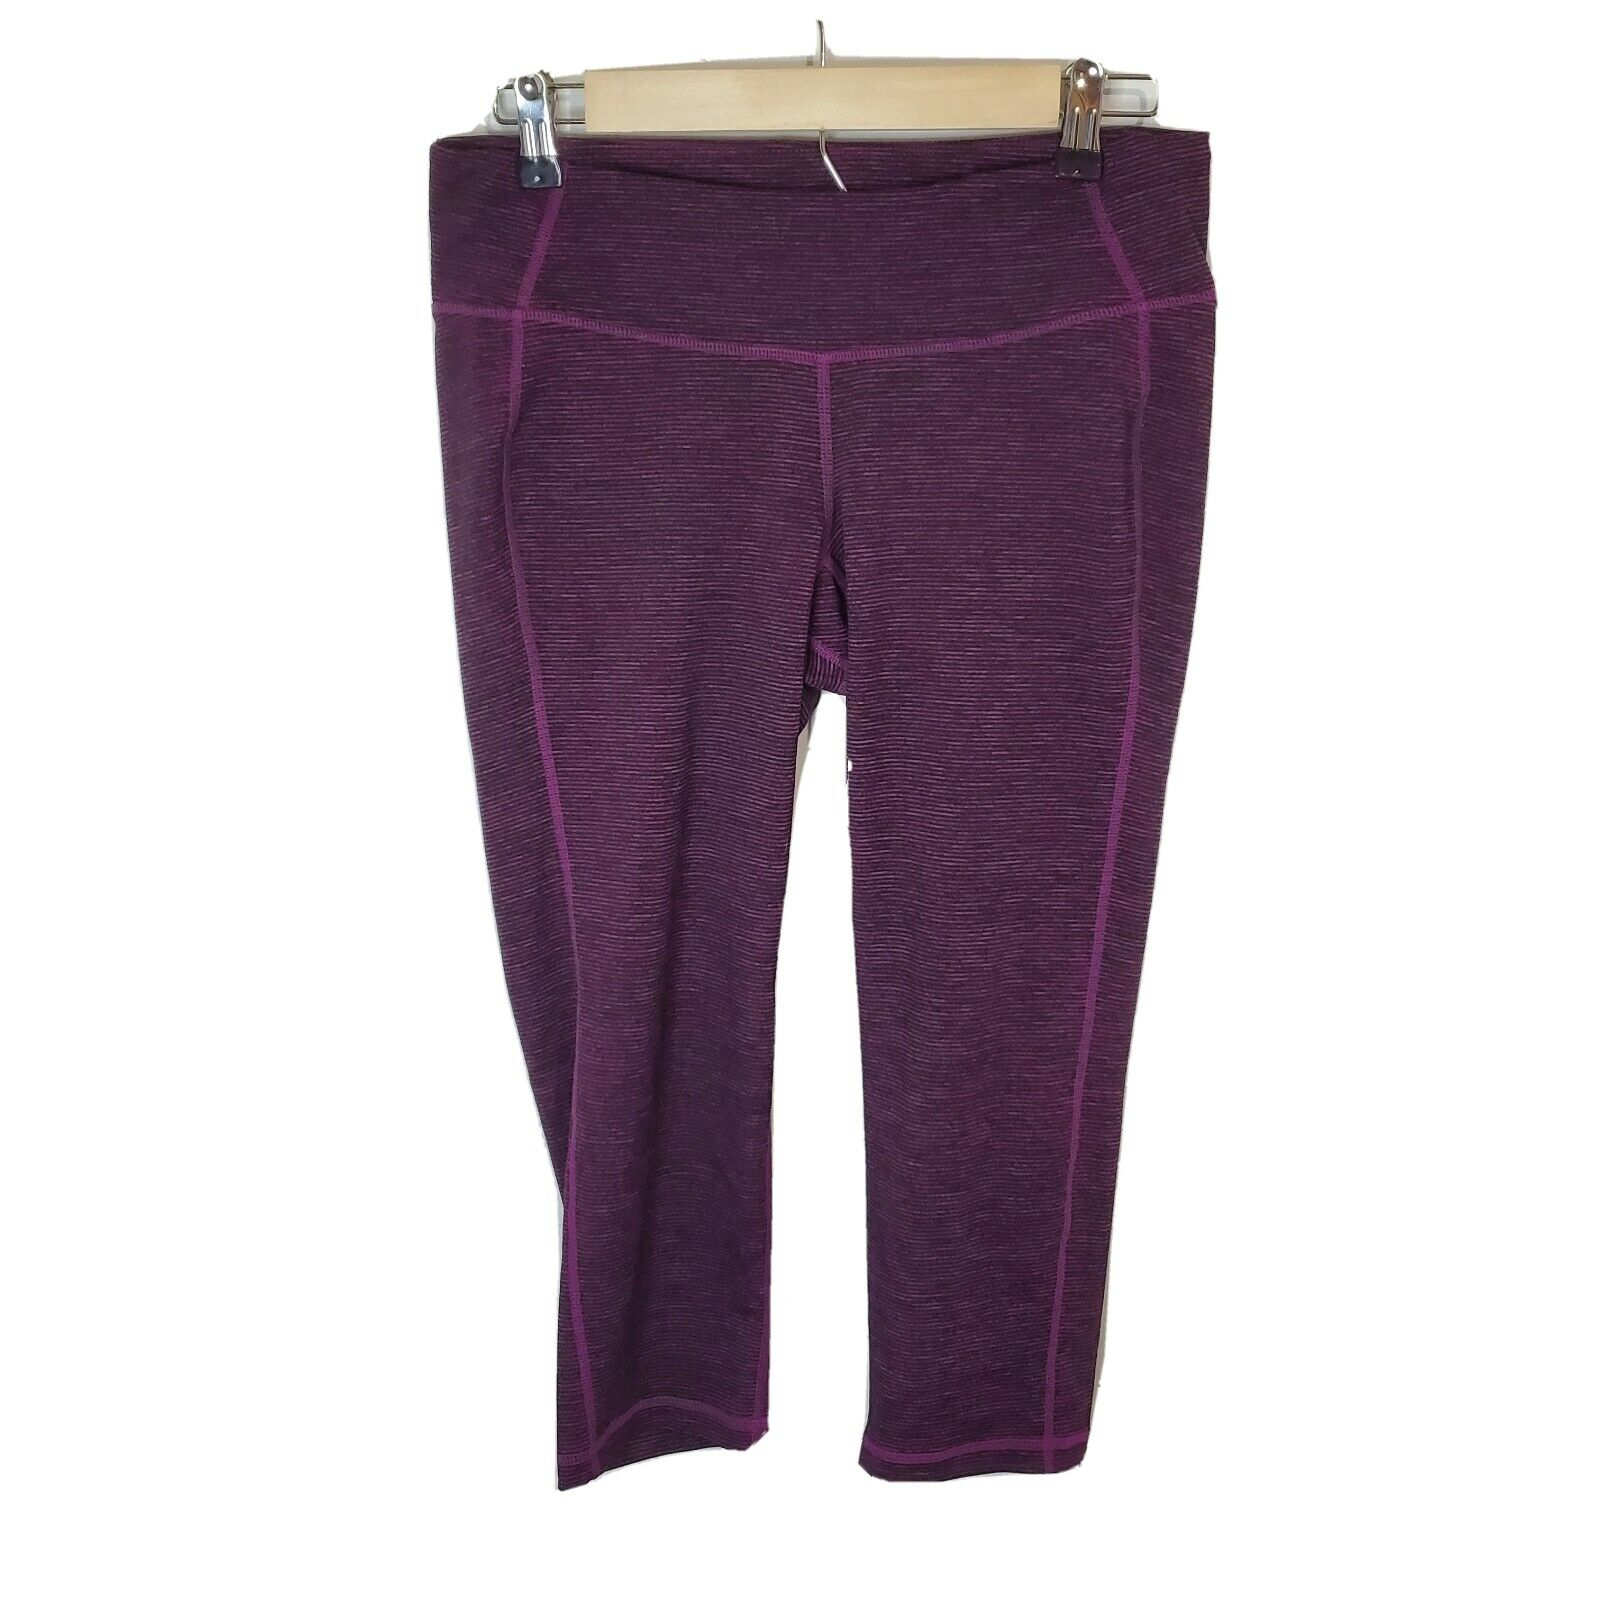 Old Navy Active Cropped Leggings Raspberry Stripes Waistband Pocket Large